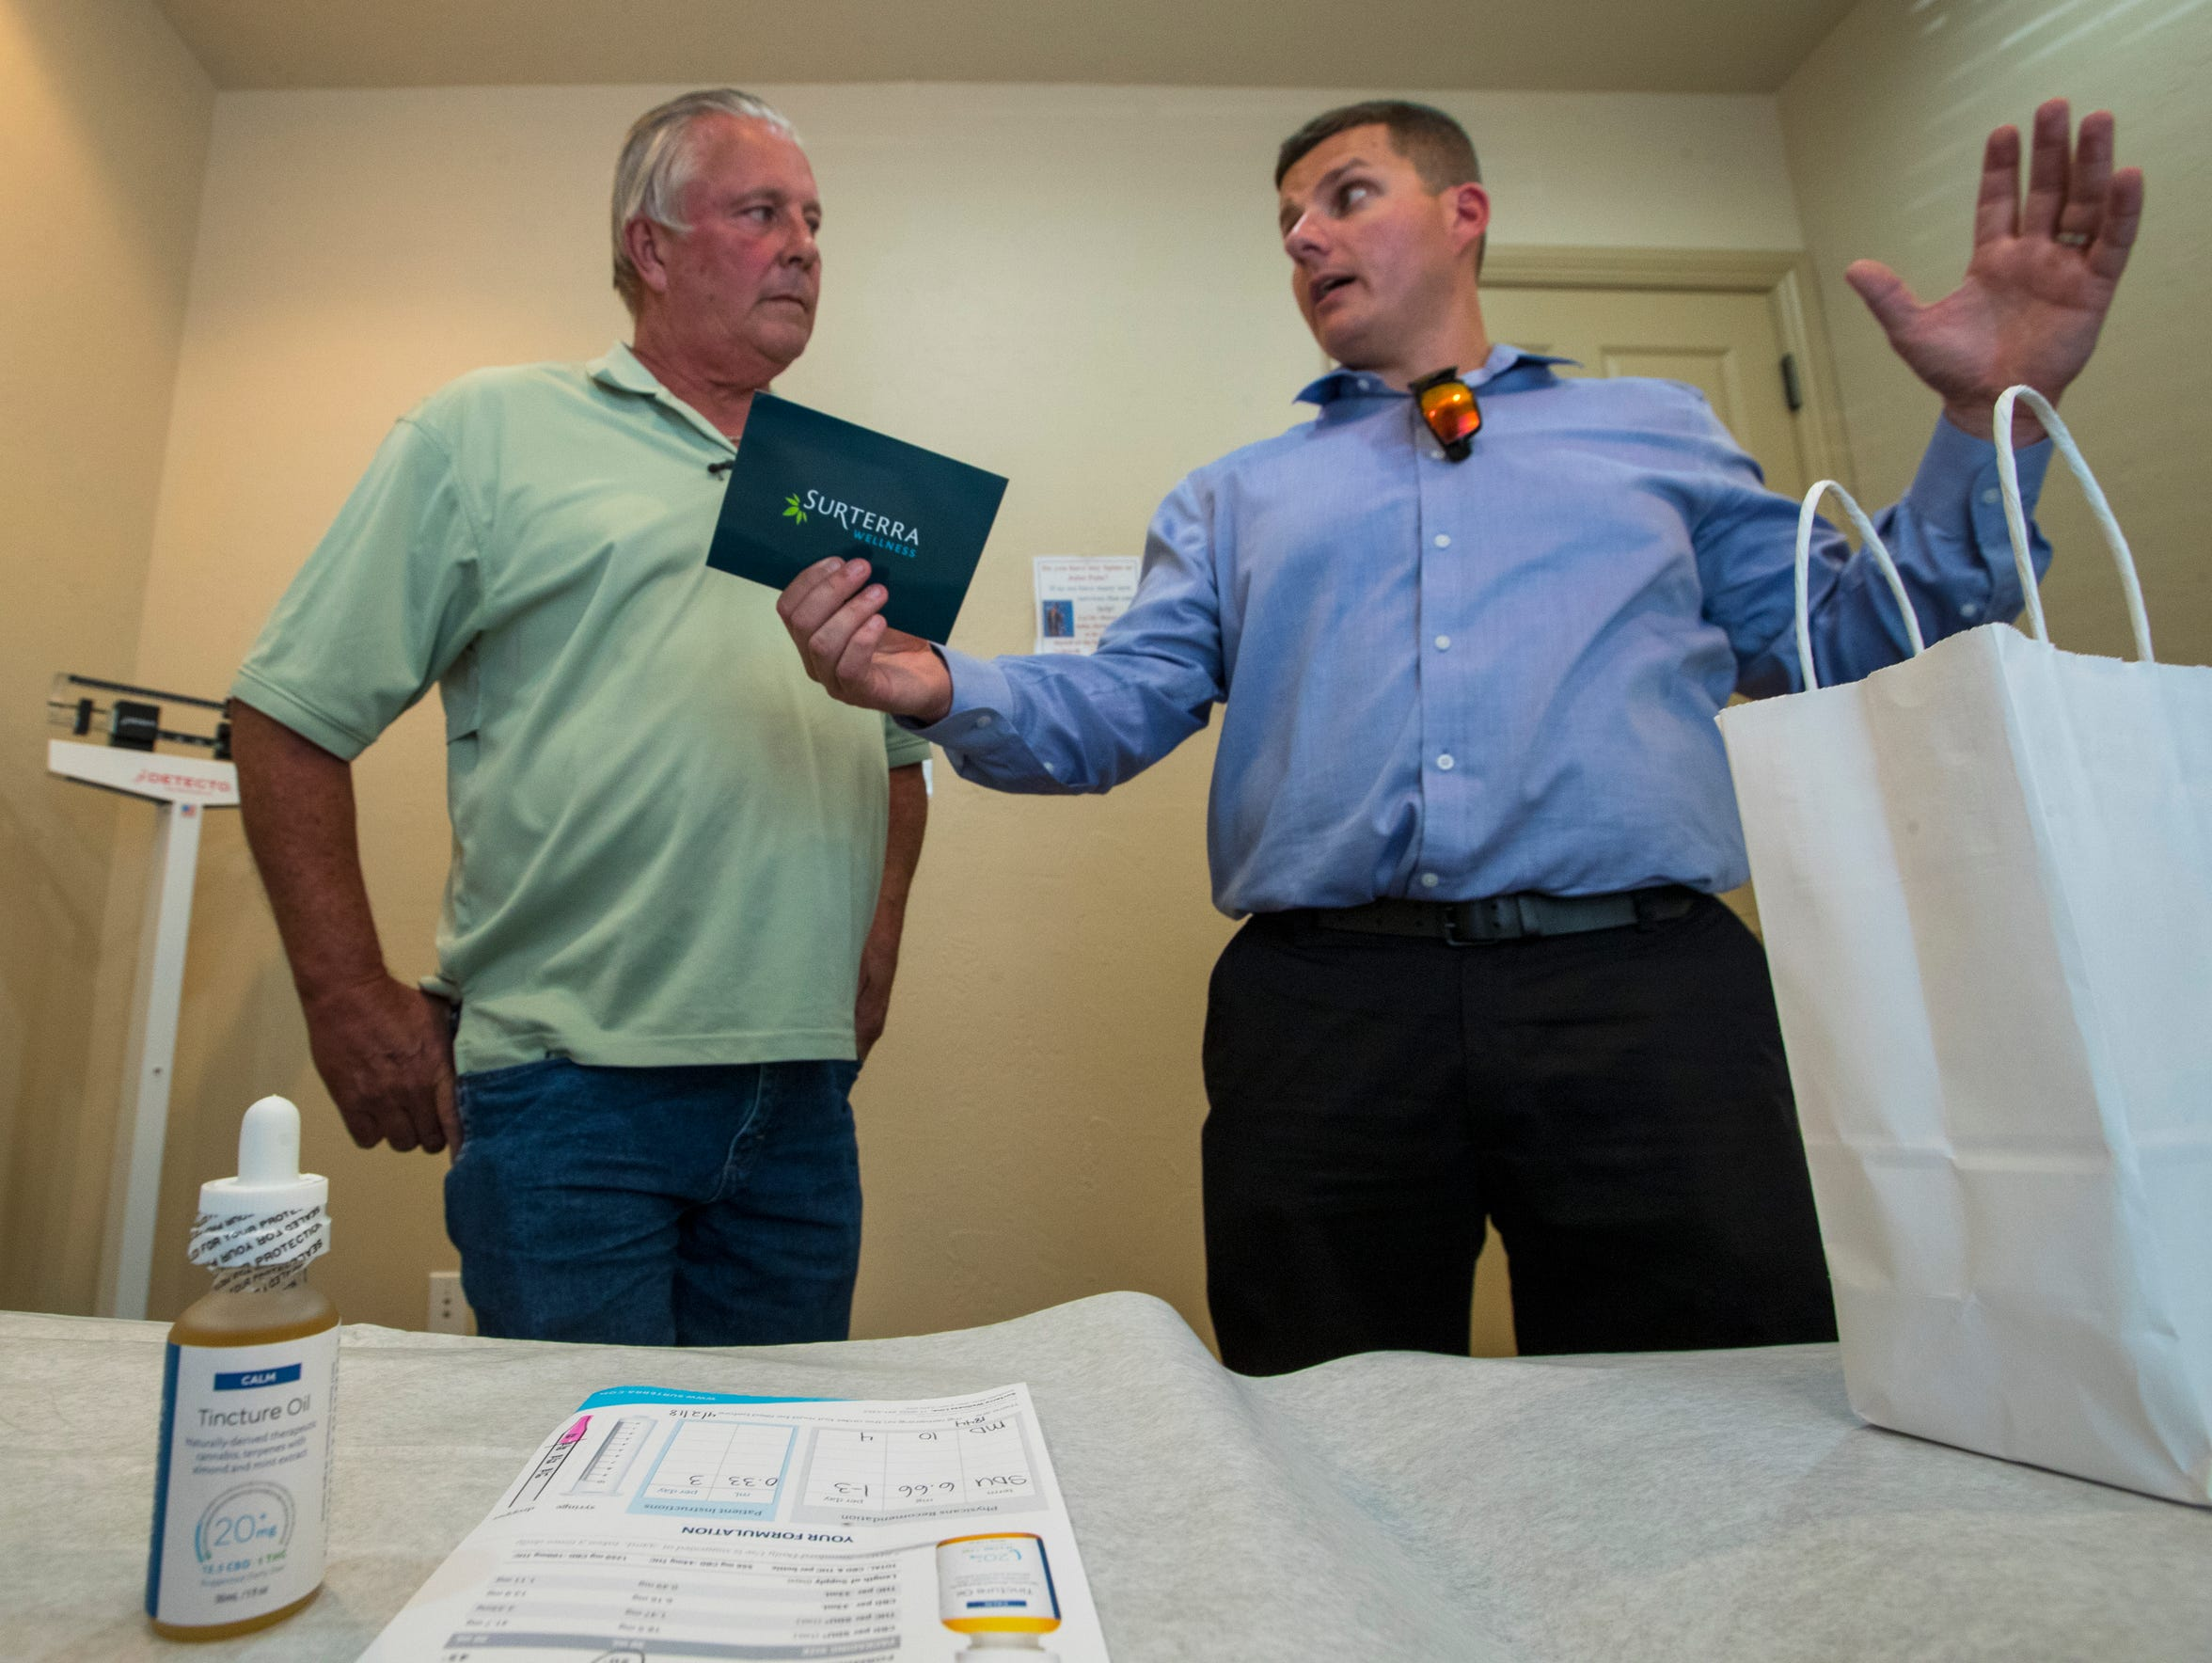 Allen Bills, left, a medical marijuana patient, discusses the details of his medication order with Matthew Lipani, an assistant manager with Surterra Inc. Surterra, a medical marijuana distributor, provides delivery services to patients unable to visit their store locations.